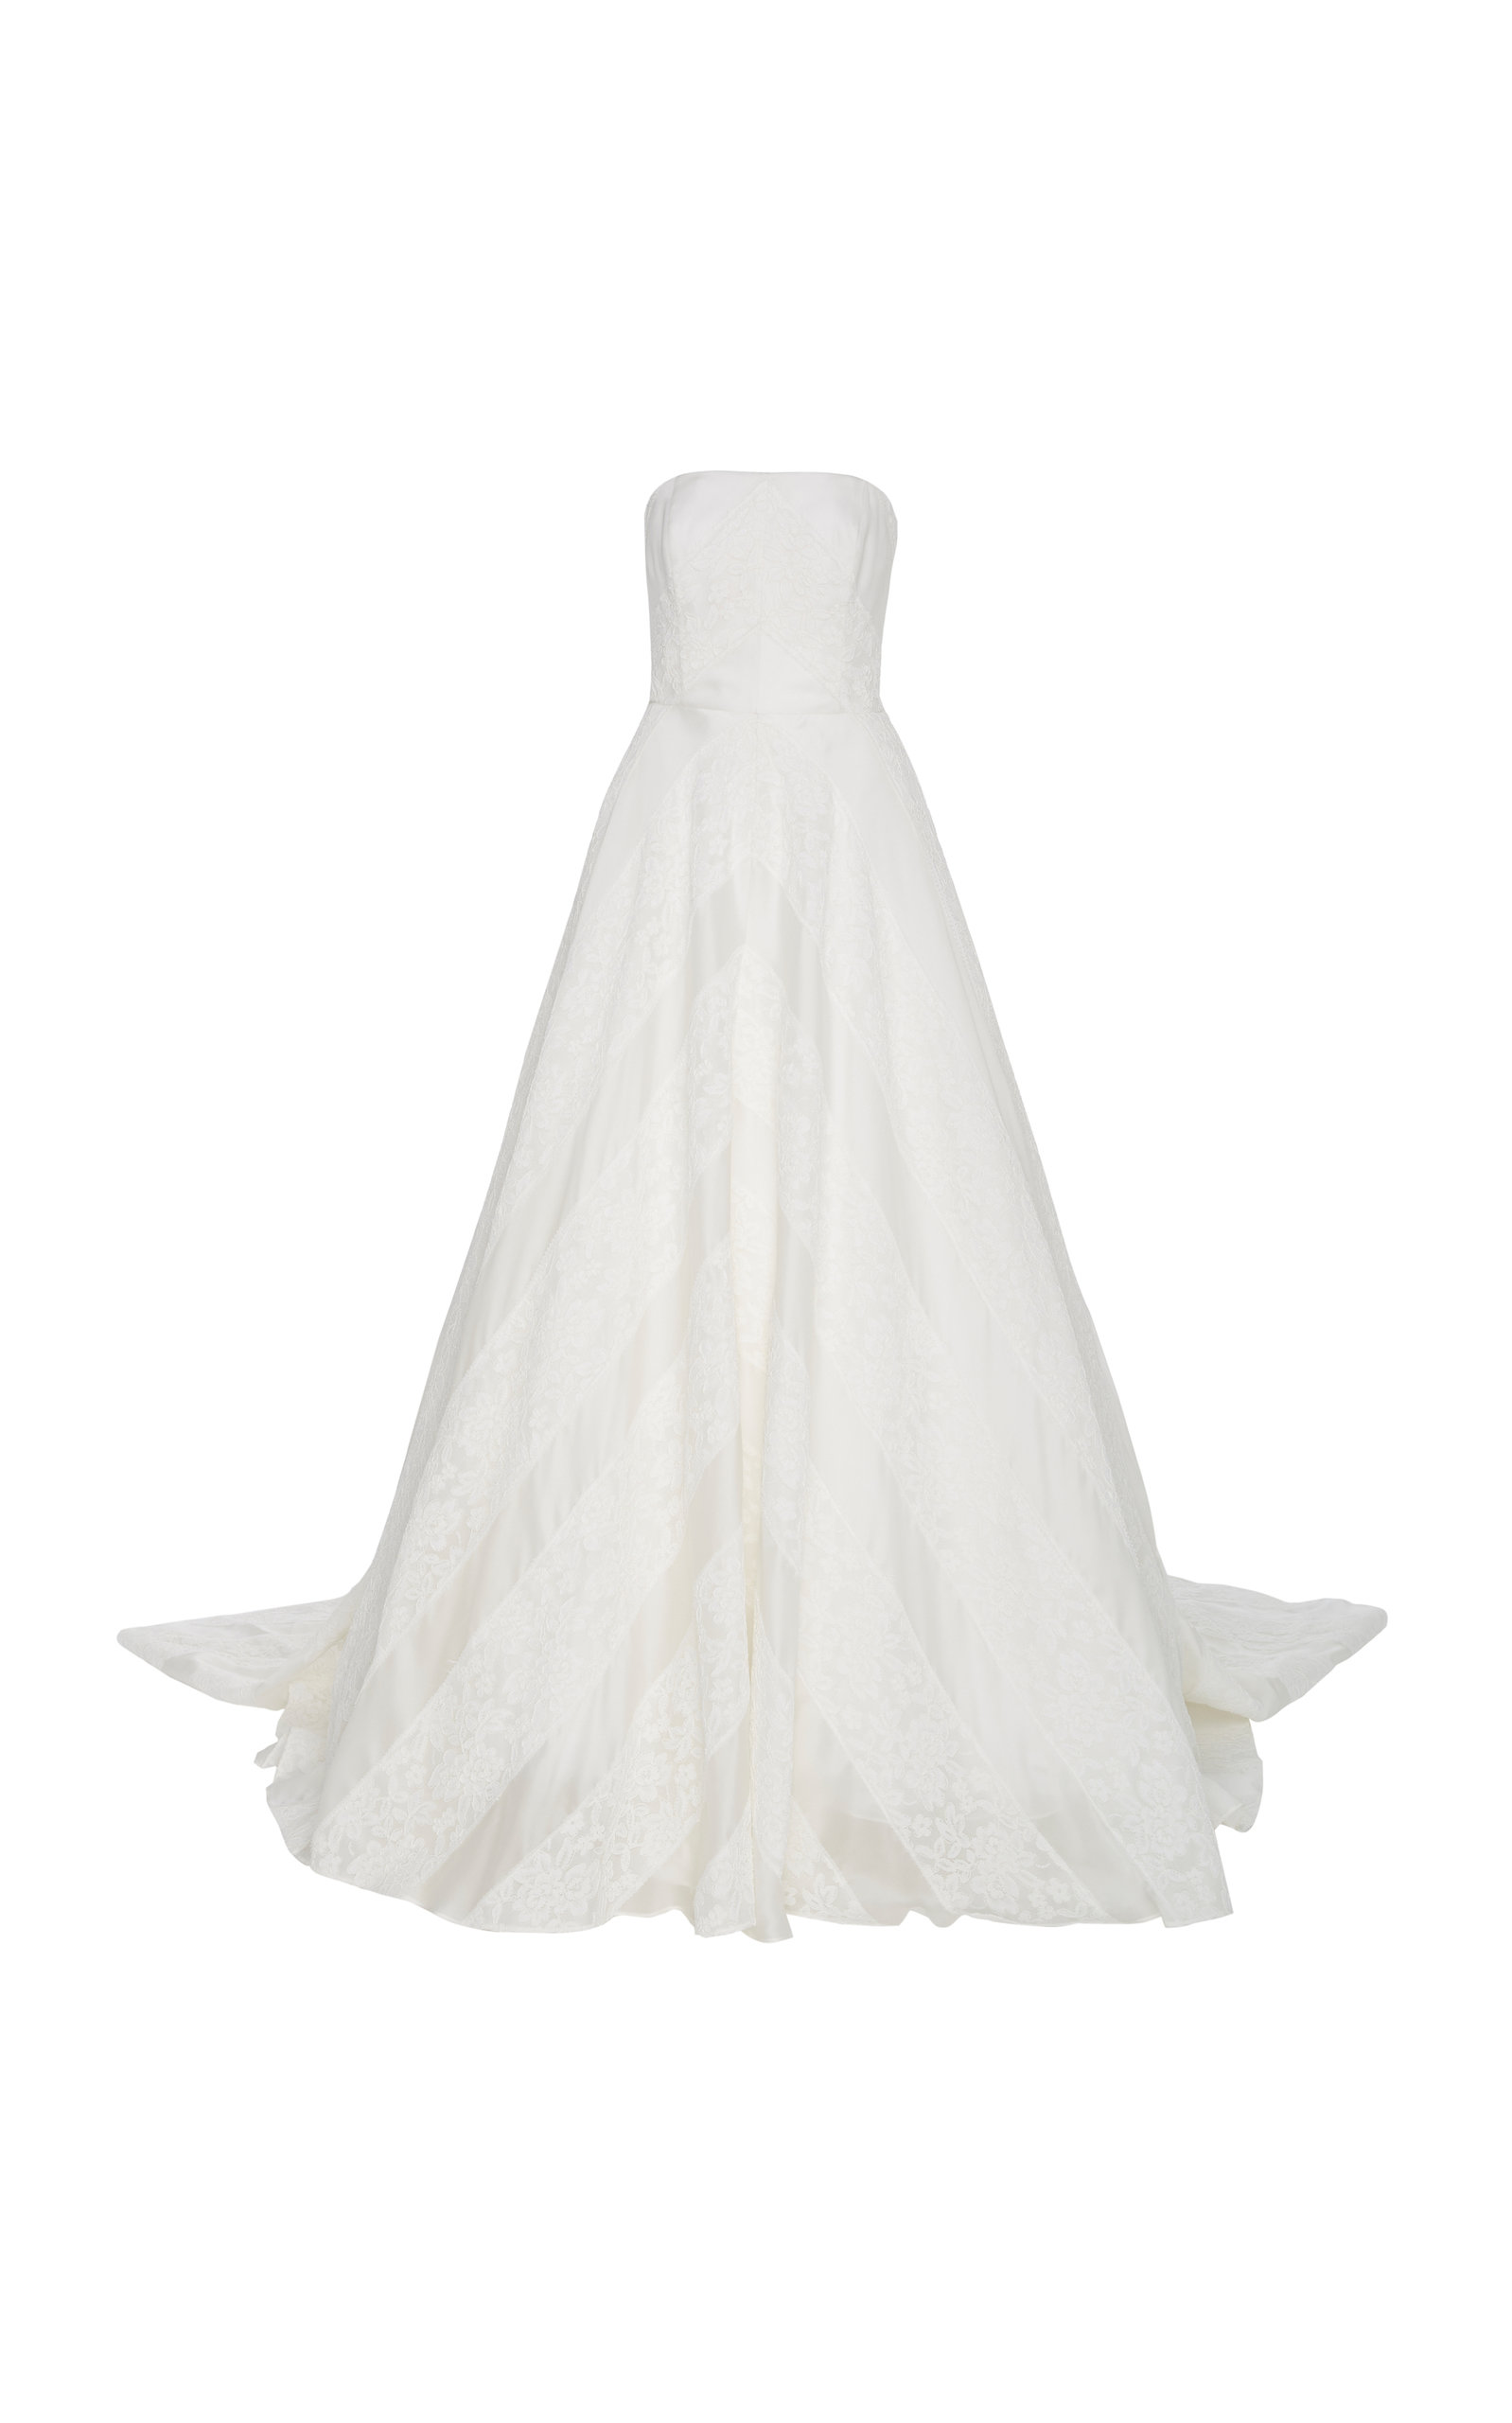 Buy Carolina Herrera Bridal Hudson Lace Overlay Open-Back Silk Ballgown online, shop Carolina Herrera Bridal at the best price